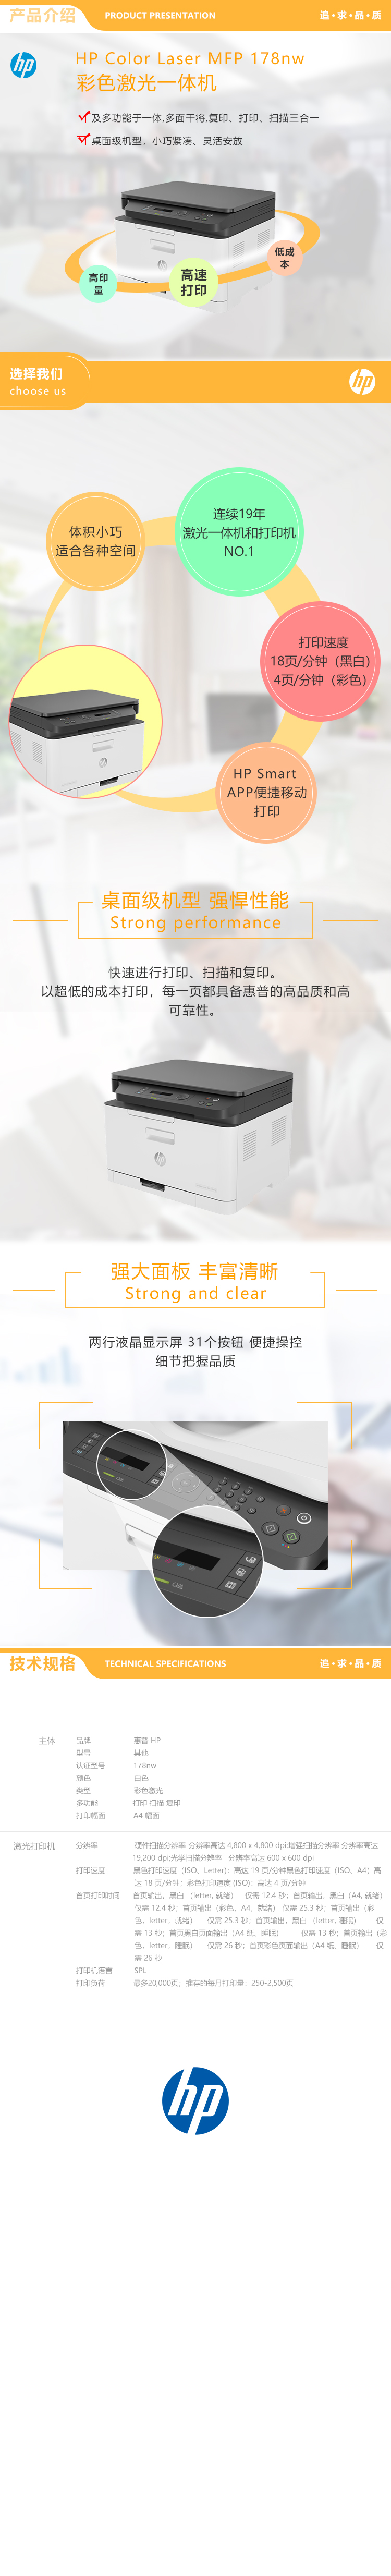 HP Color Laser MFP 178nw.jpg